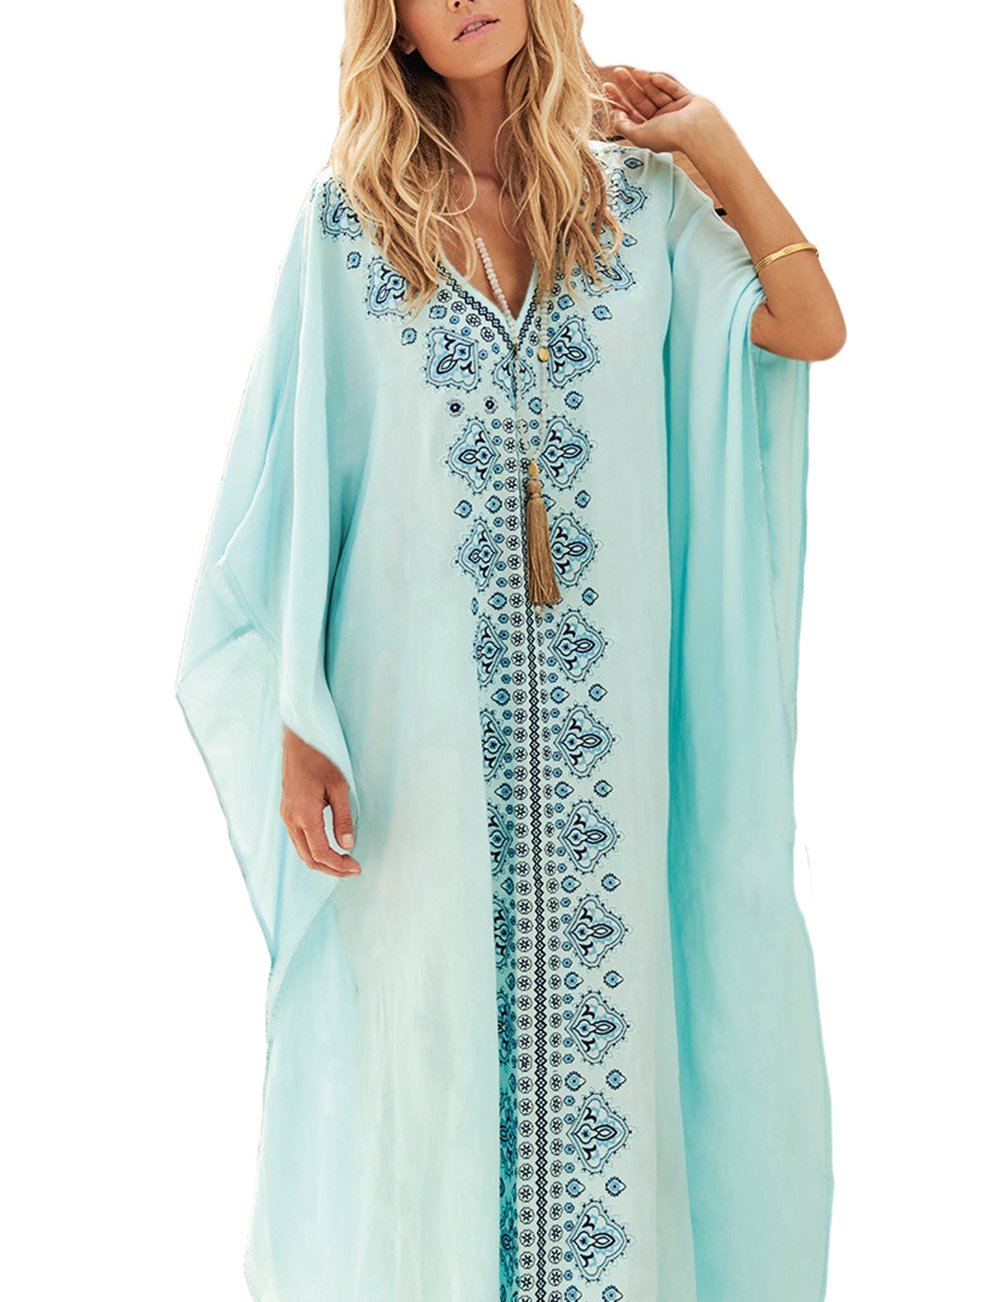 Bsubseach Kaftan Dresses for Women V Neck Batwing Sleeve Beach Turkish Dress Loose Swimsuit Bikini Cover up Swimwear Light Blue